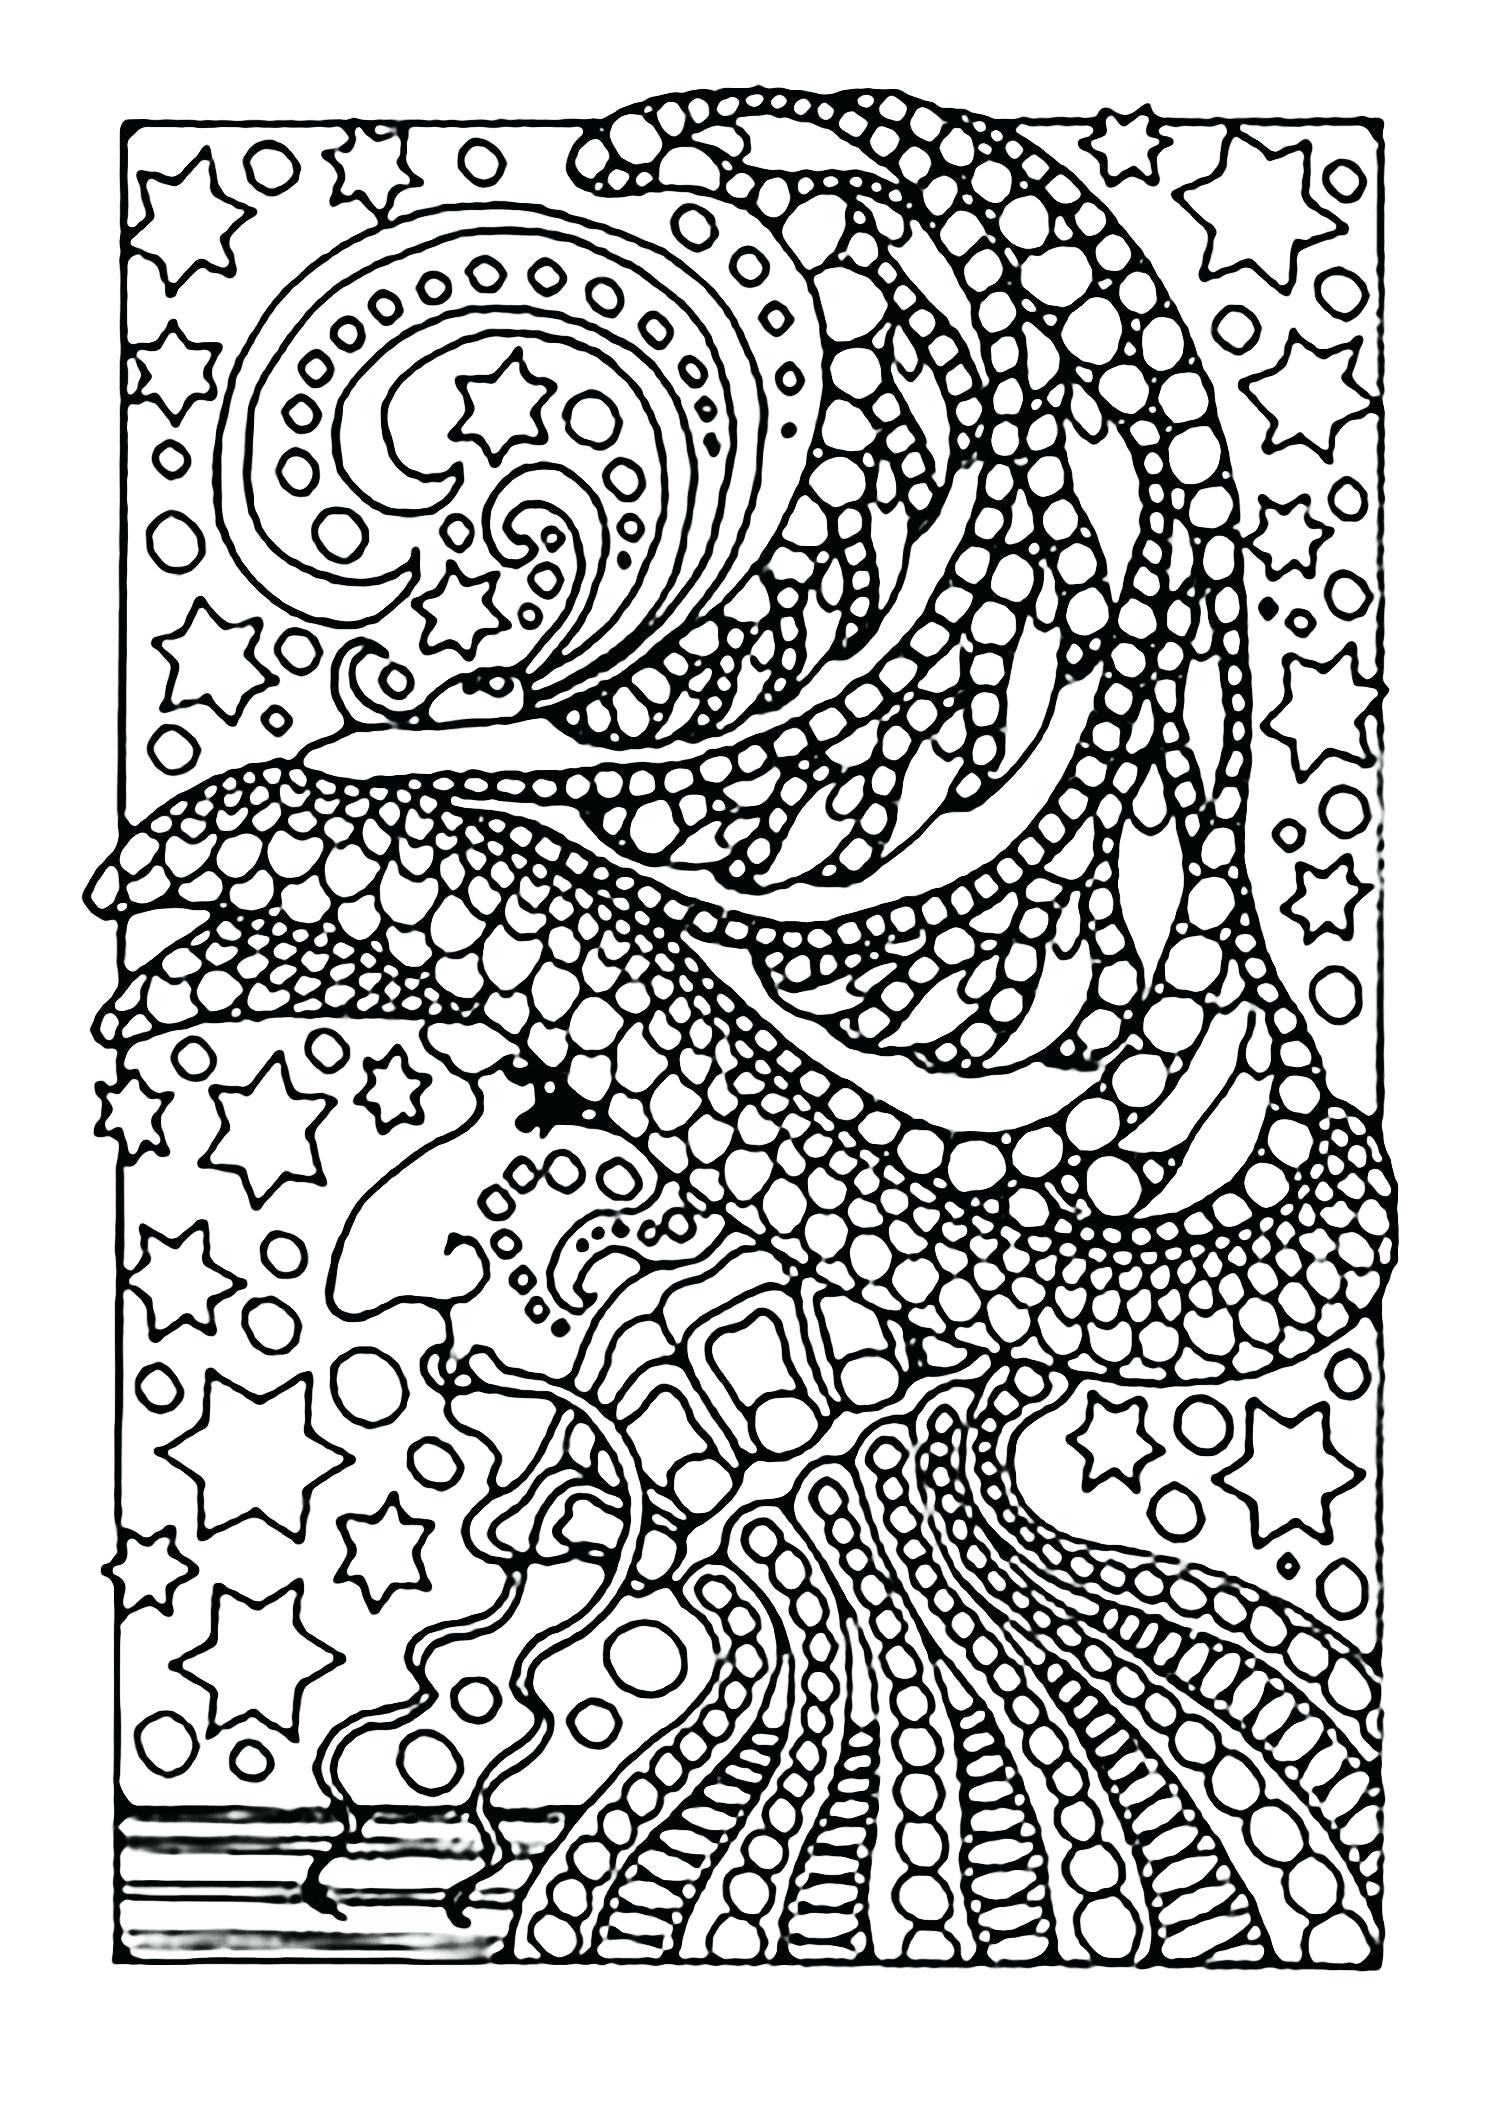 Math Coloring Worksheets 2nd Grade Coloring Math Worksheets Free Printable for 2nd Grade